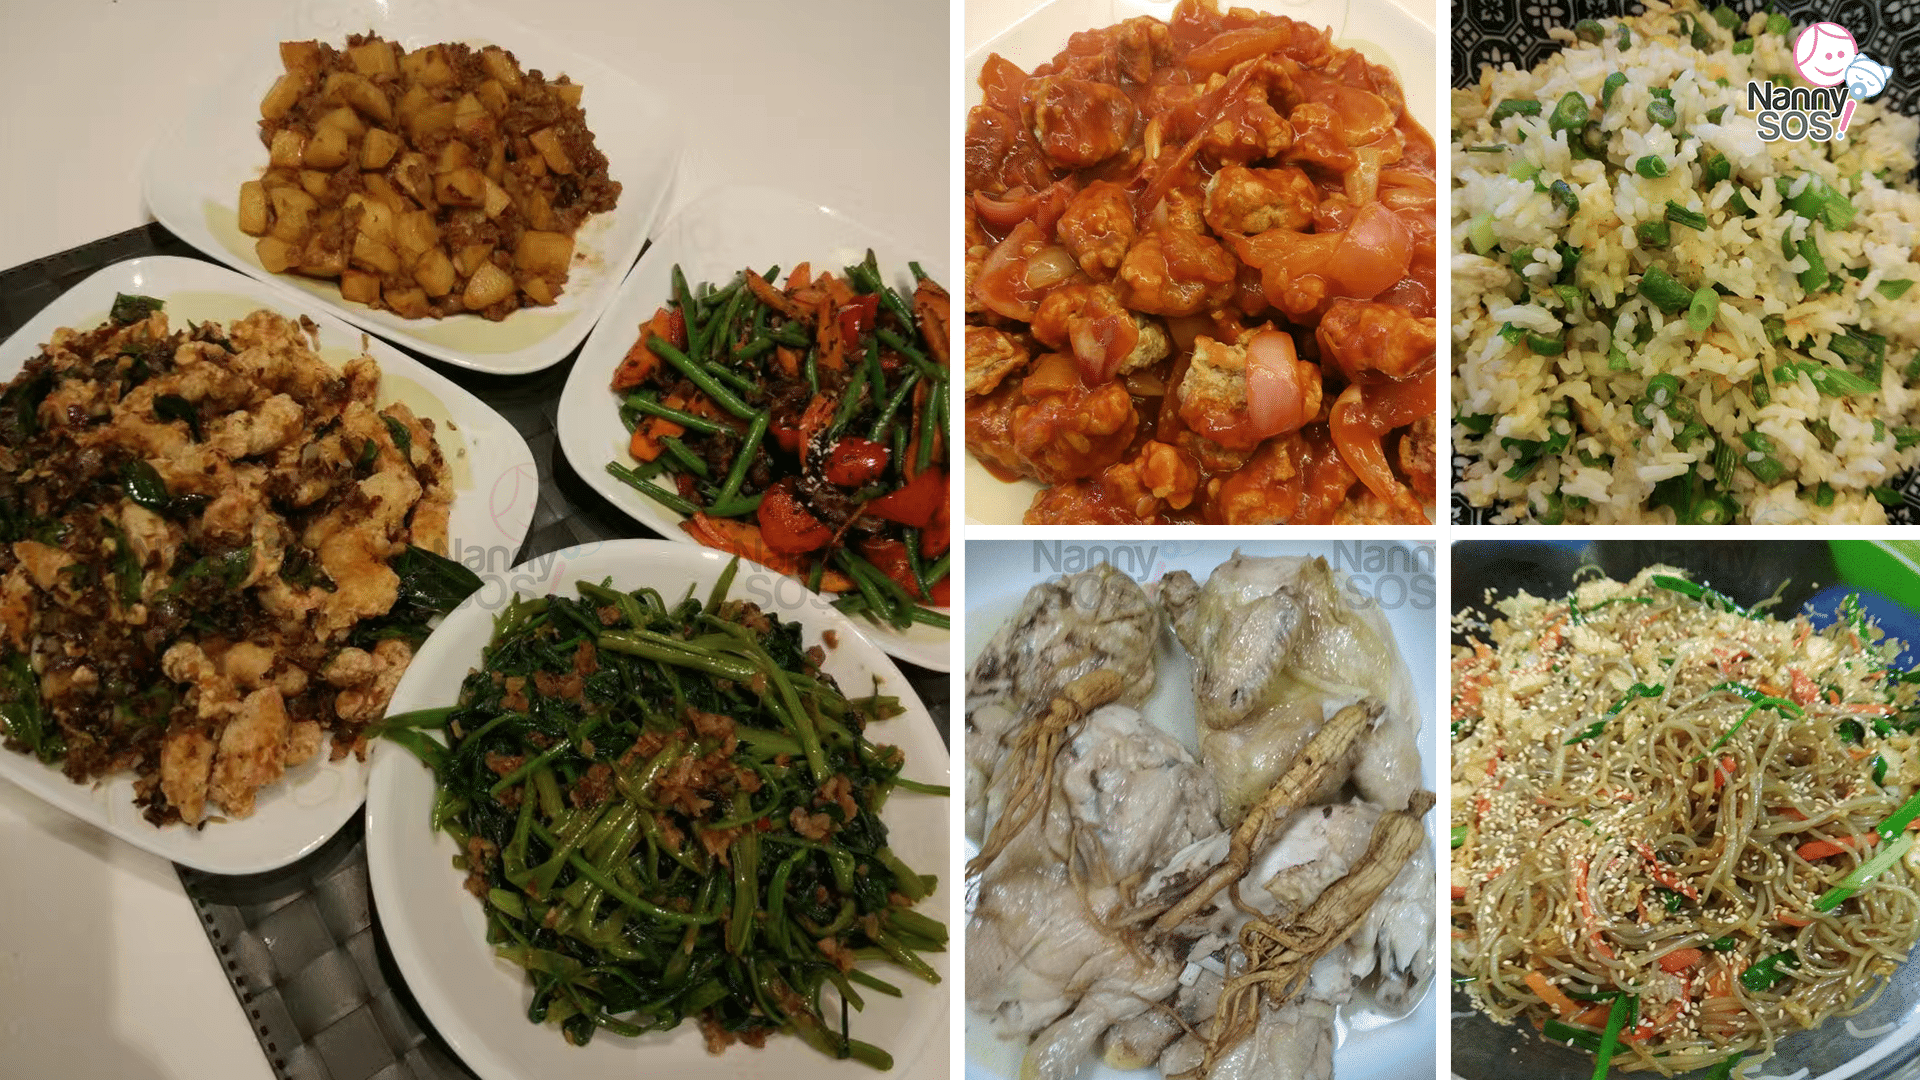 Confinement food by nanny Chan in Singapore